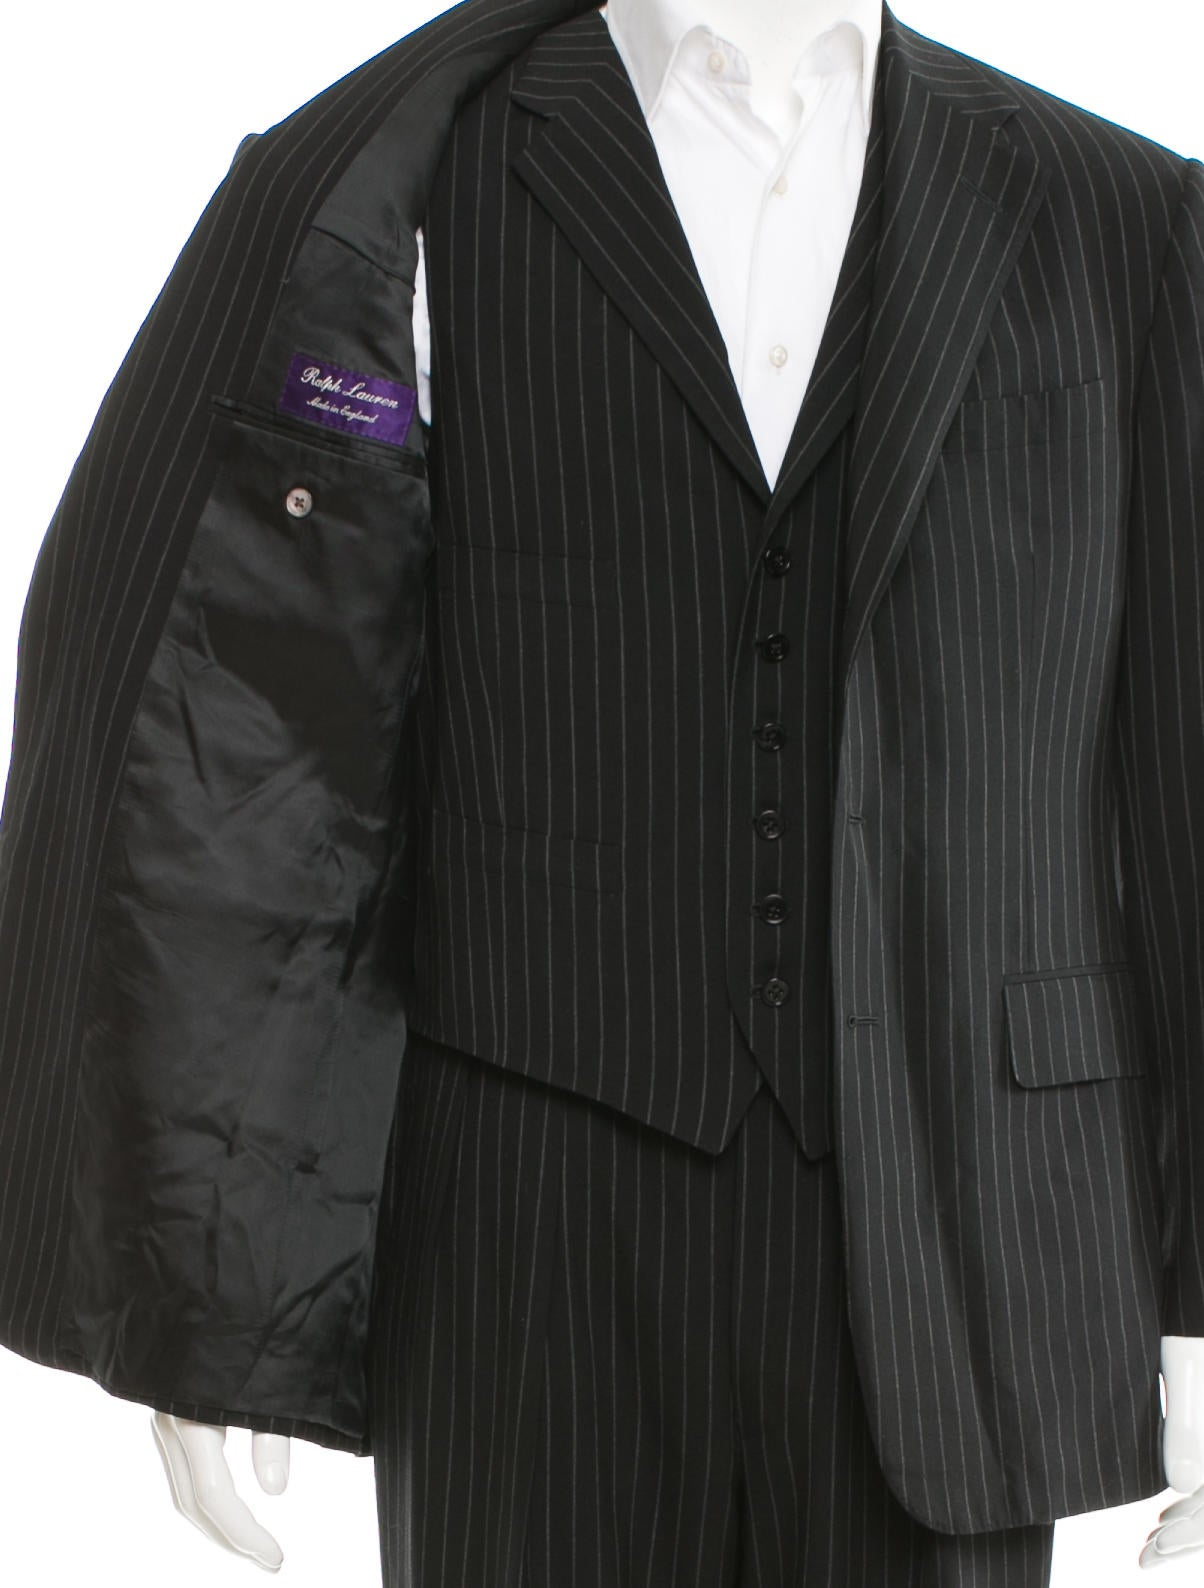 Ralph Lauren Purple Label Pinstripe Three Piece Suit